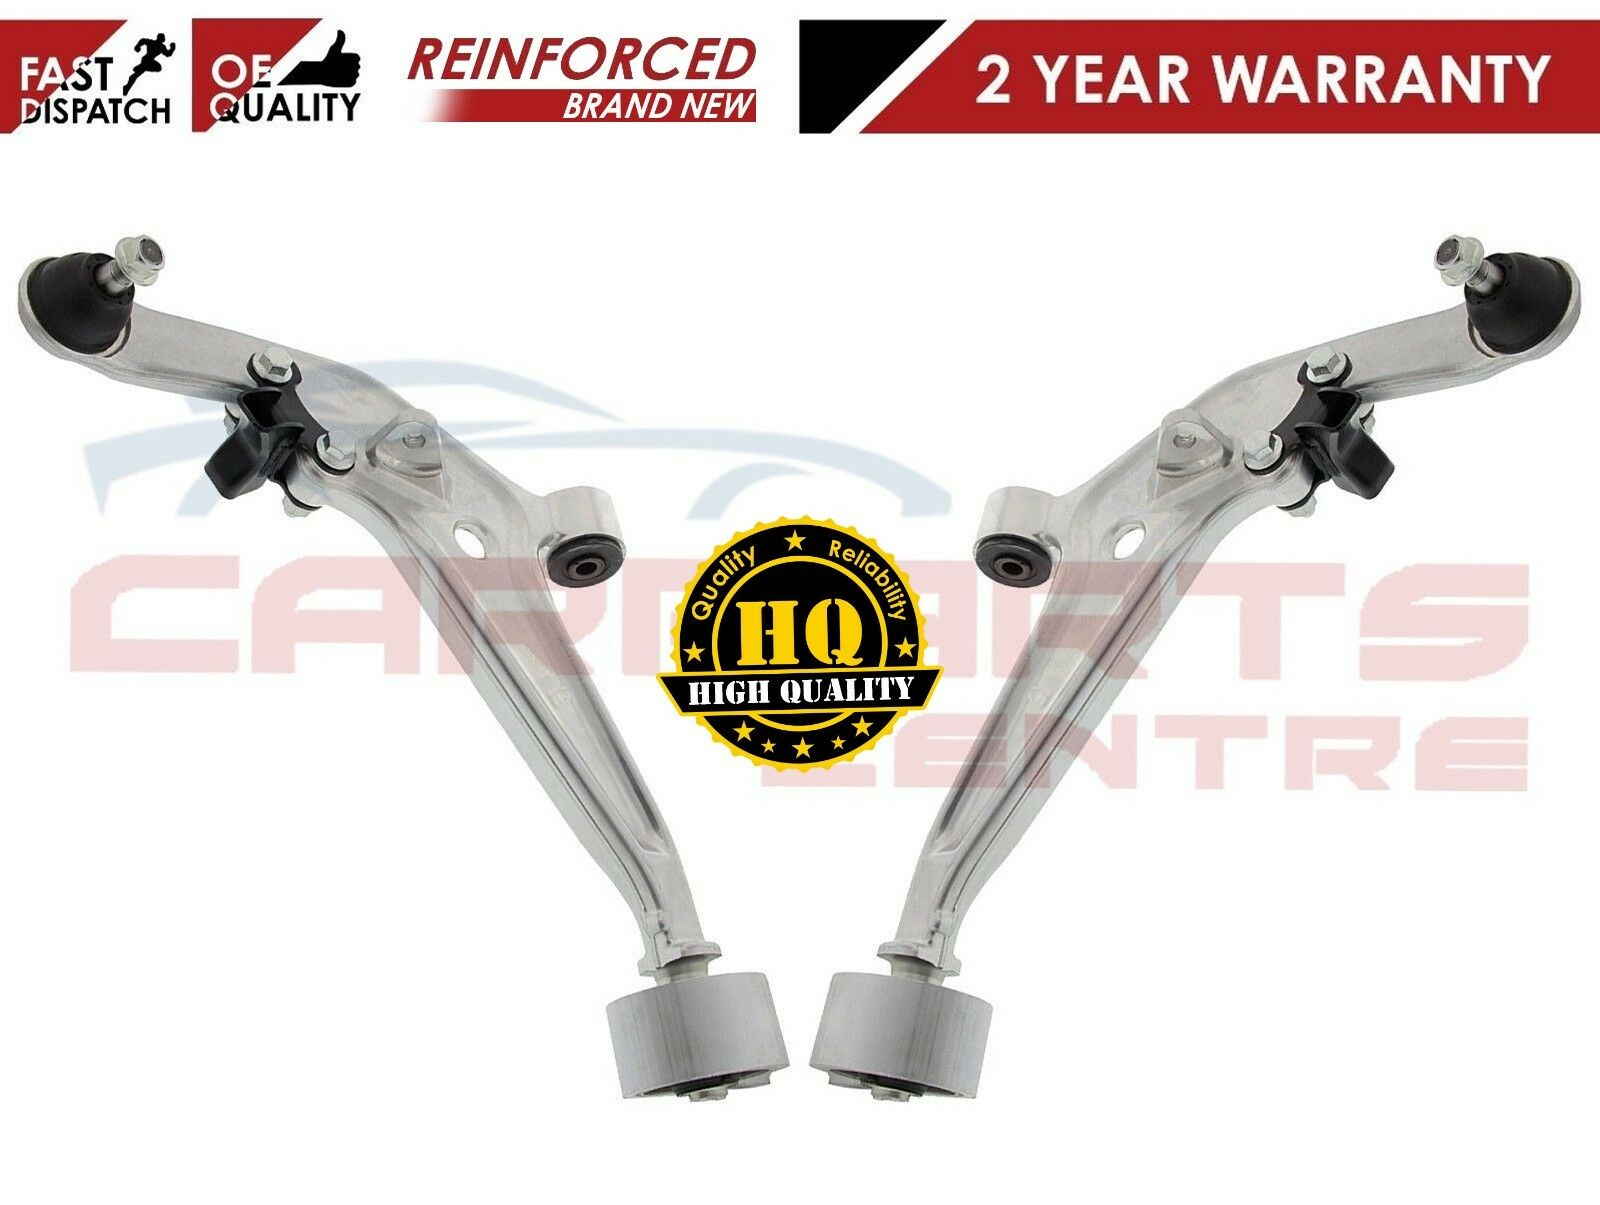 Pair OE-quality Brand New Front Control Arm kit for BMW 5 Series Vehicles